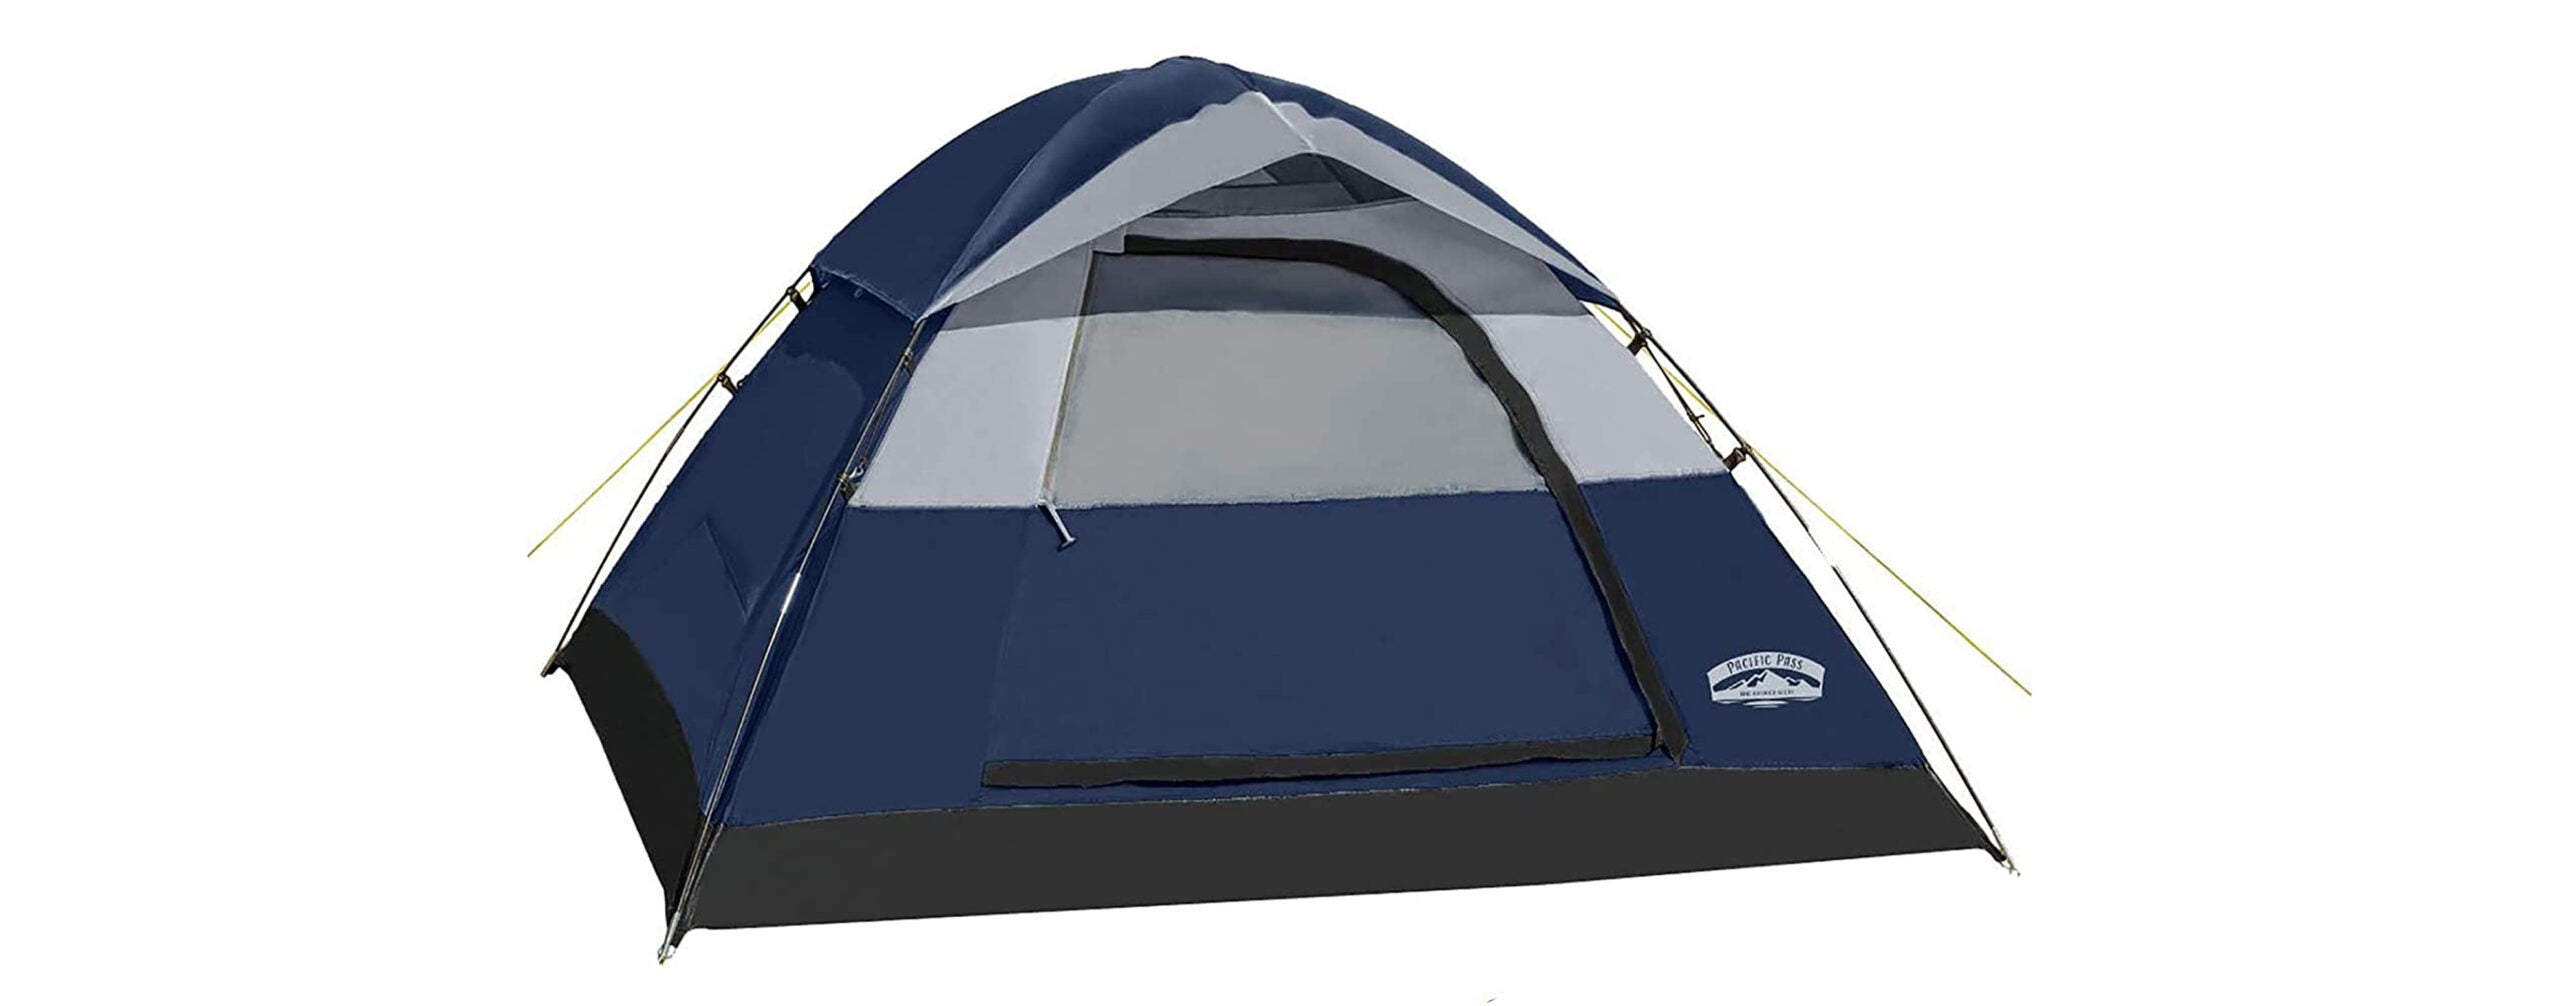 Best Camping Tents: Comfortable Options for the Outdoors